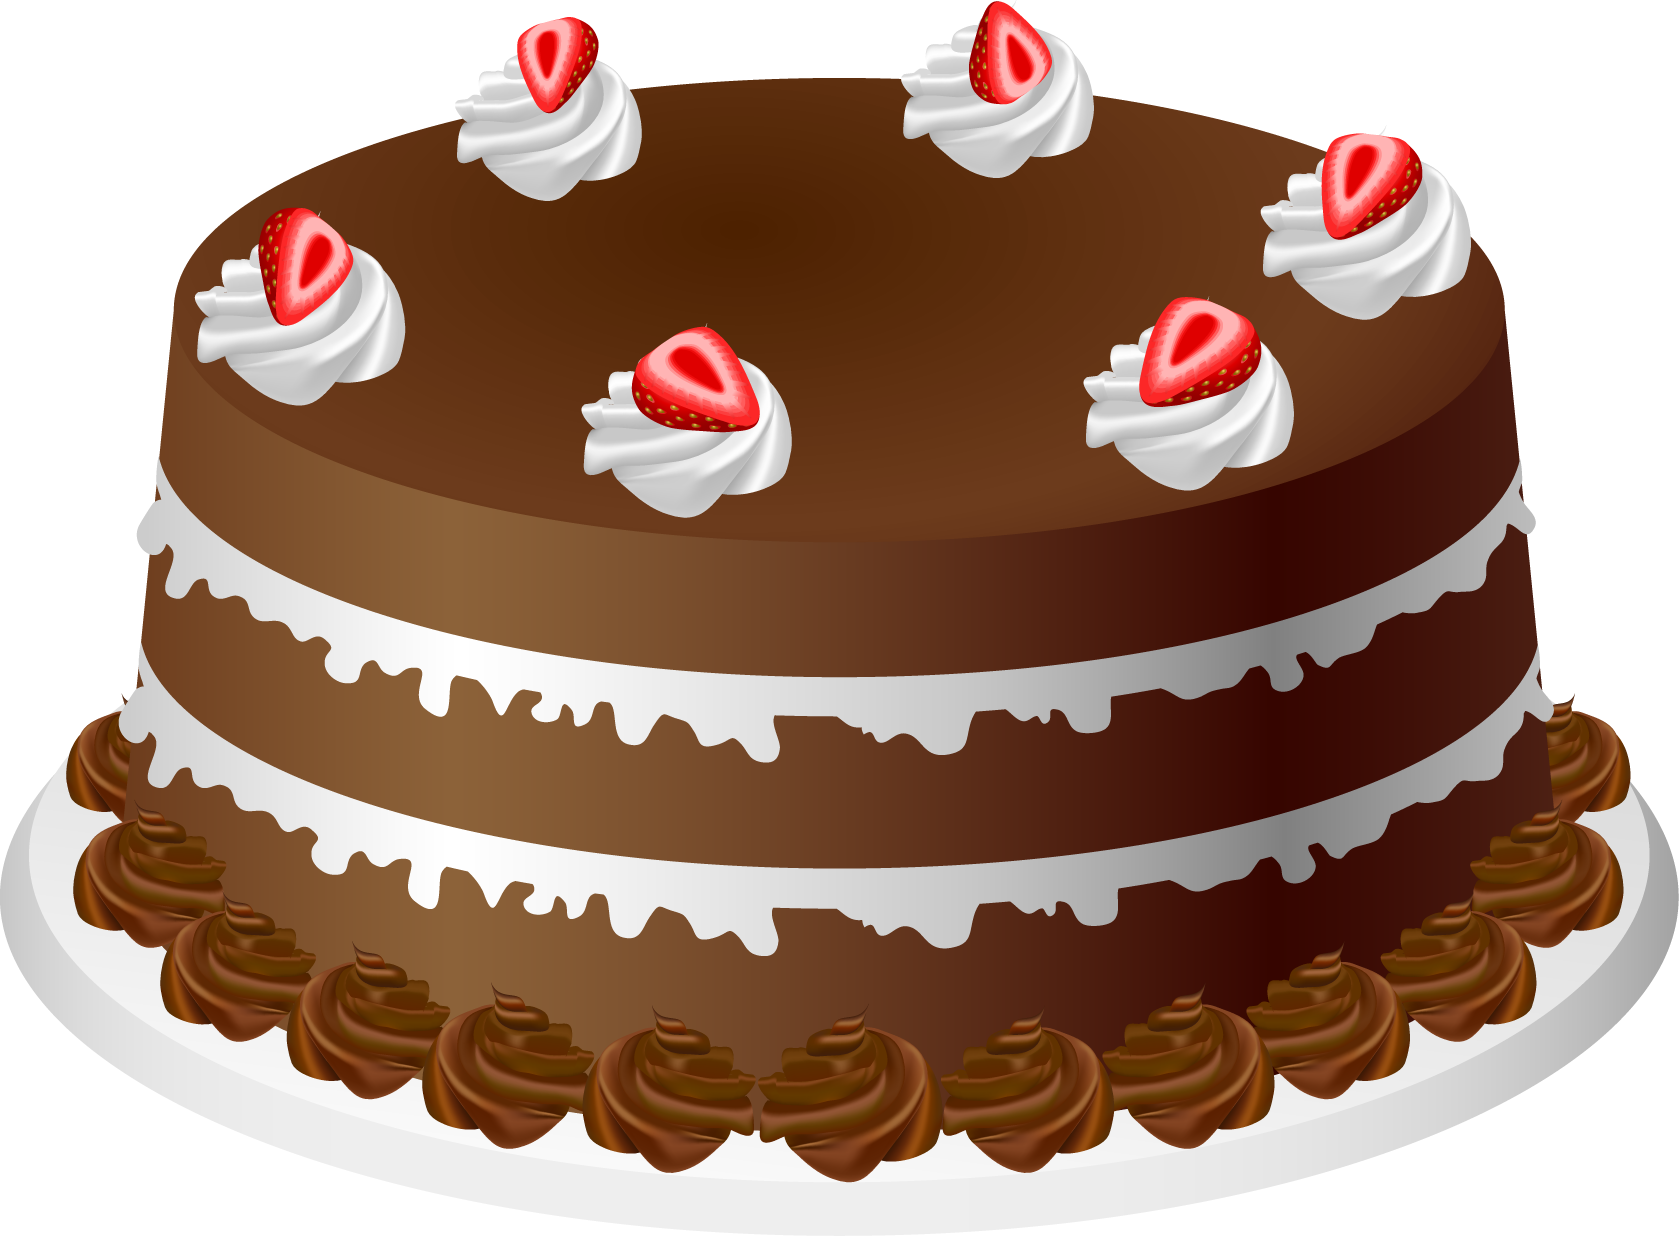 Pastry clipart piece chocolate cake Clipart Clipart German Cake Chocolate